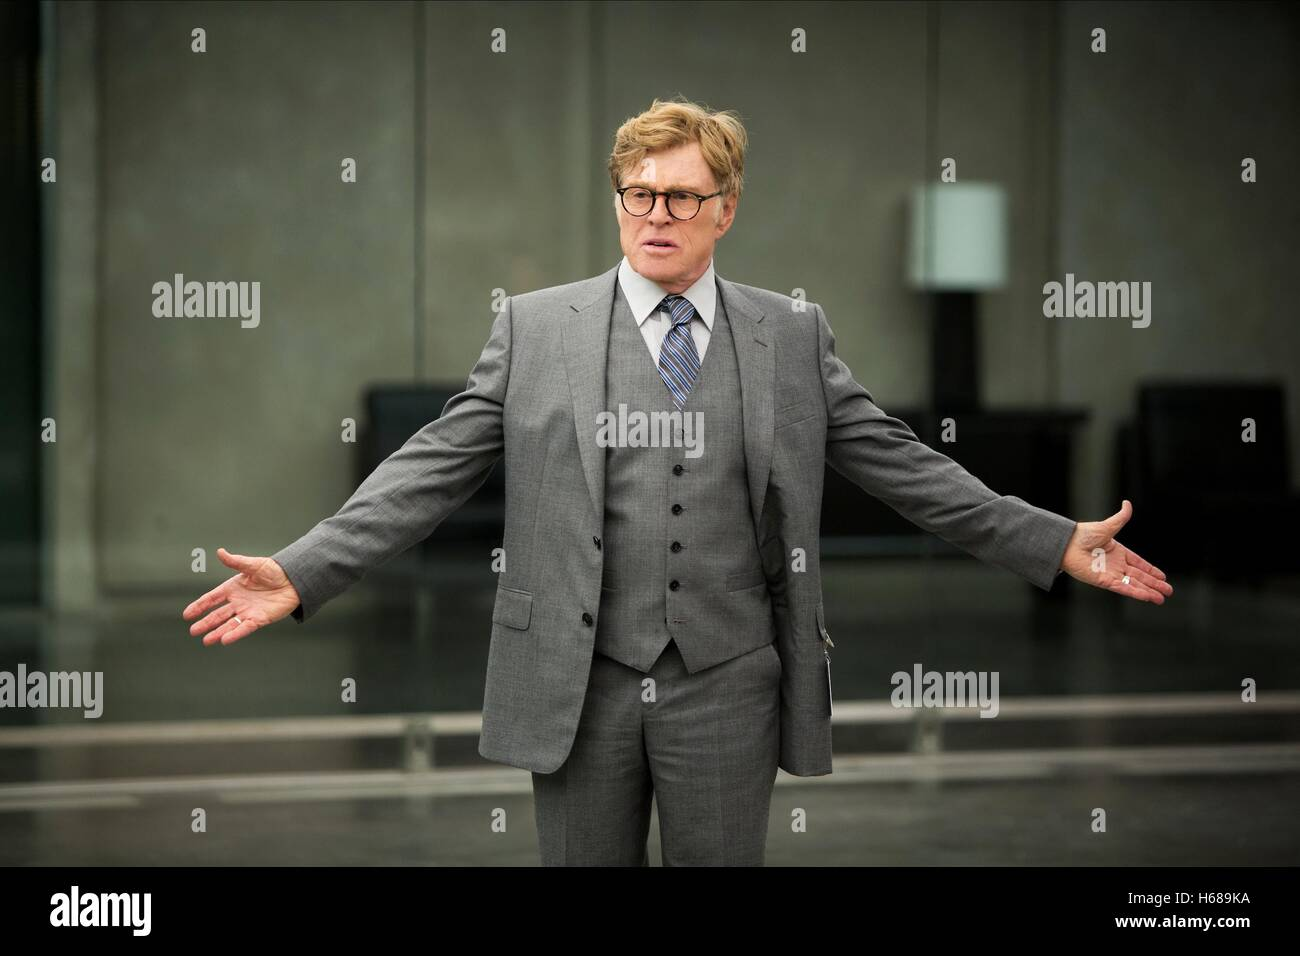 ROBERT REDFORD CAPTAIN AMERICA: THE WINTER SOLDIER (2014) - Stock Image